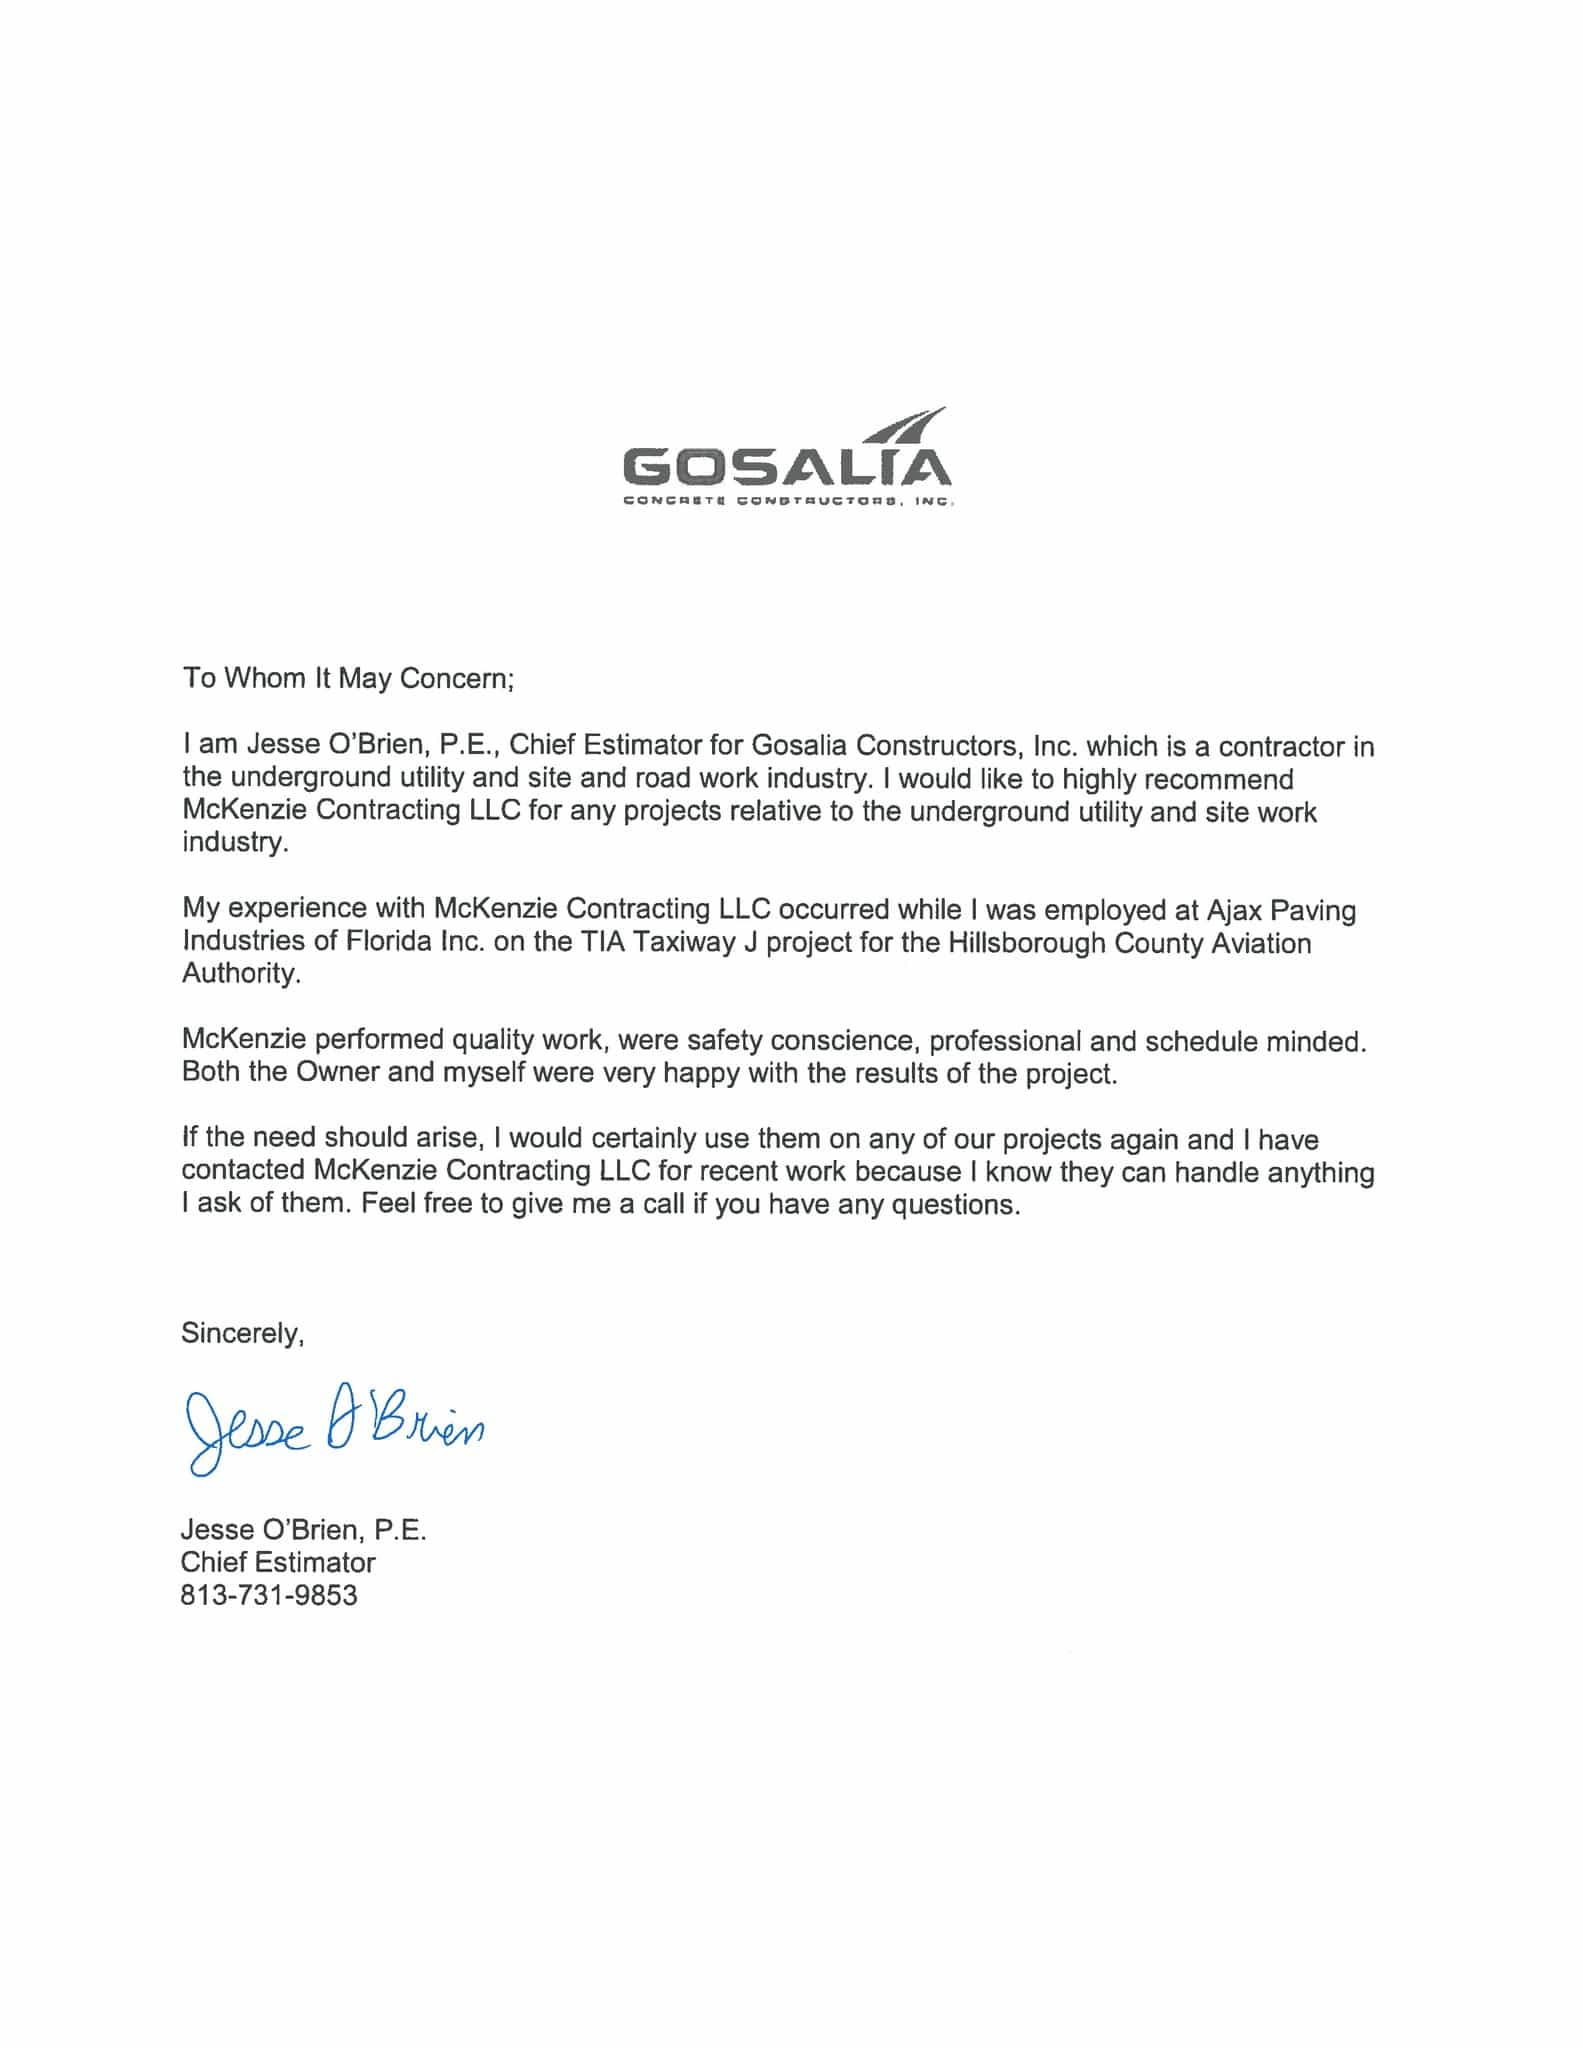 Gosalia Concrete Construction Letter of Recommendation